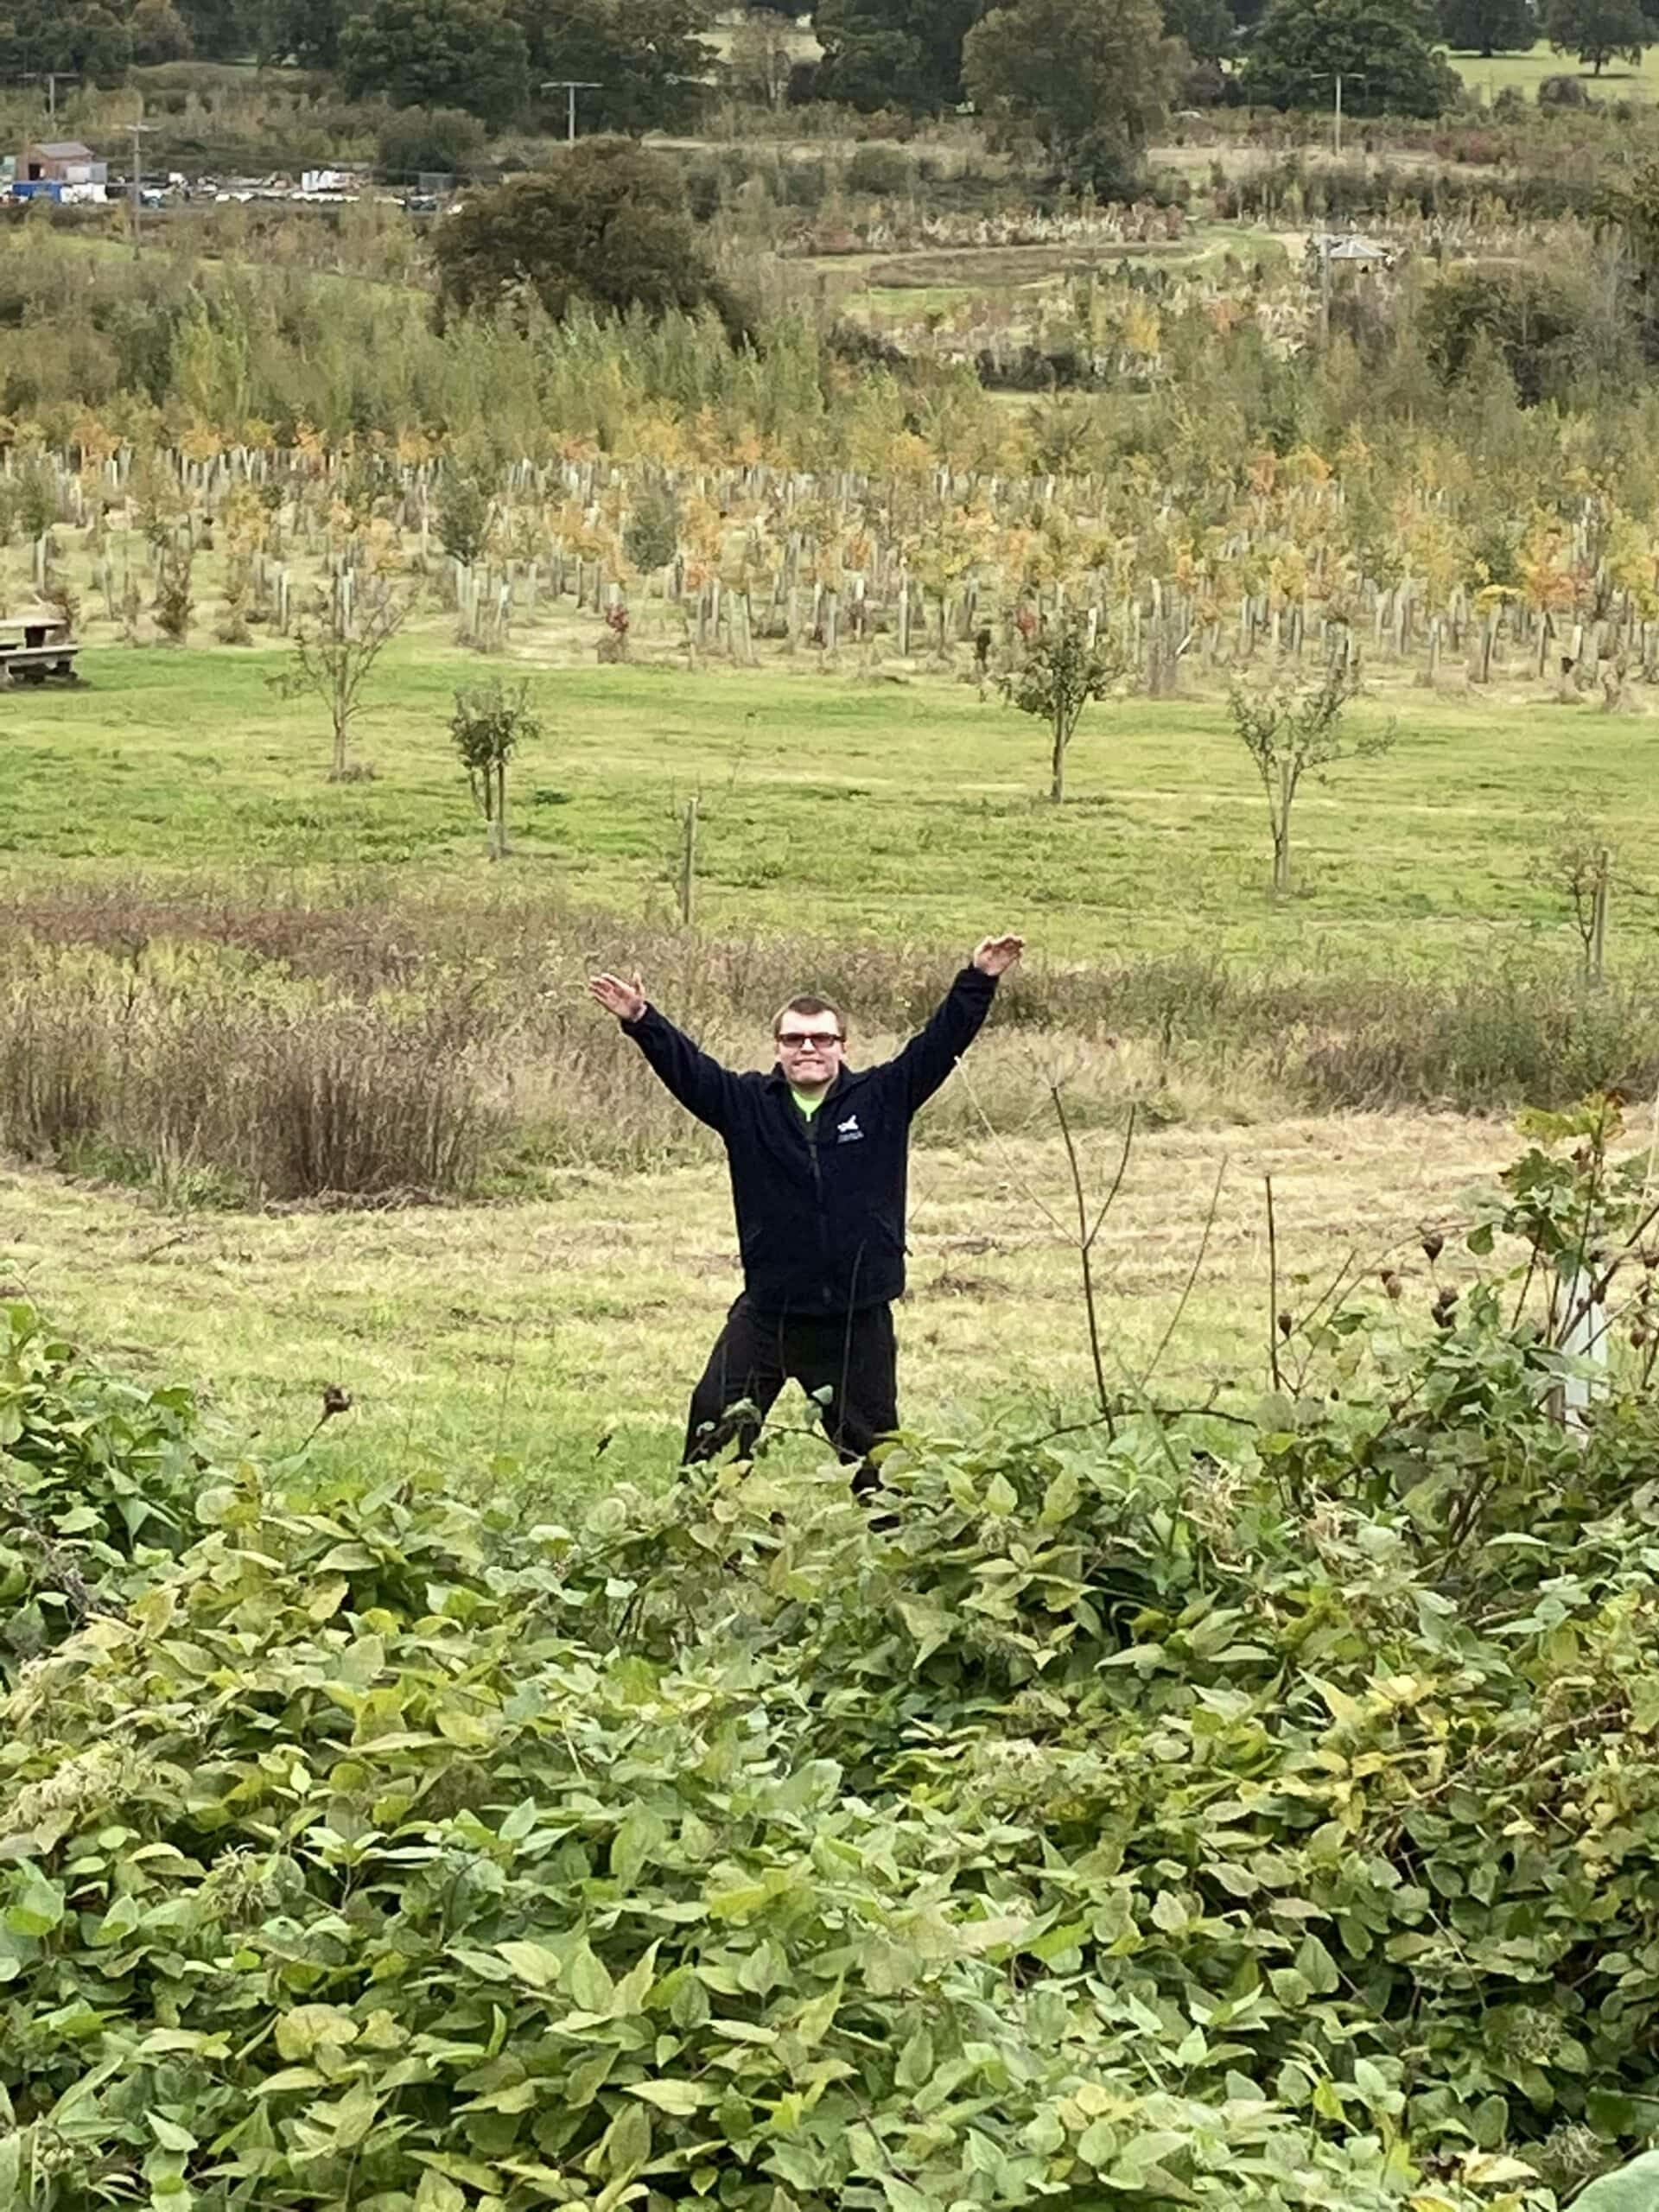 Teen with his arms raised in a field